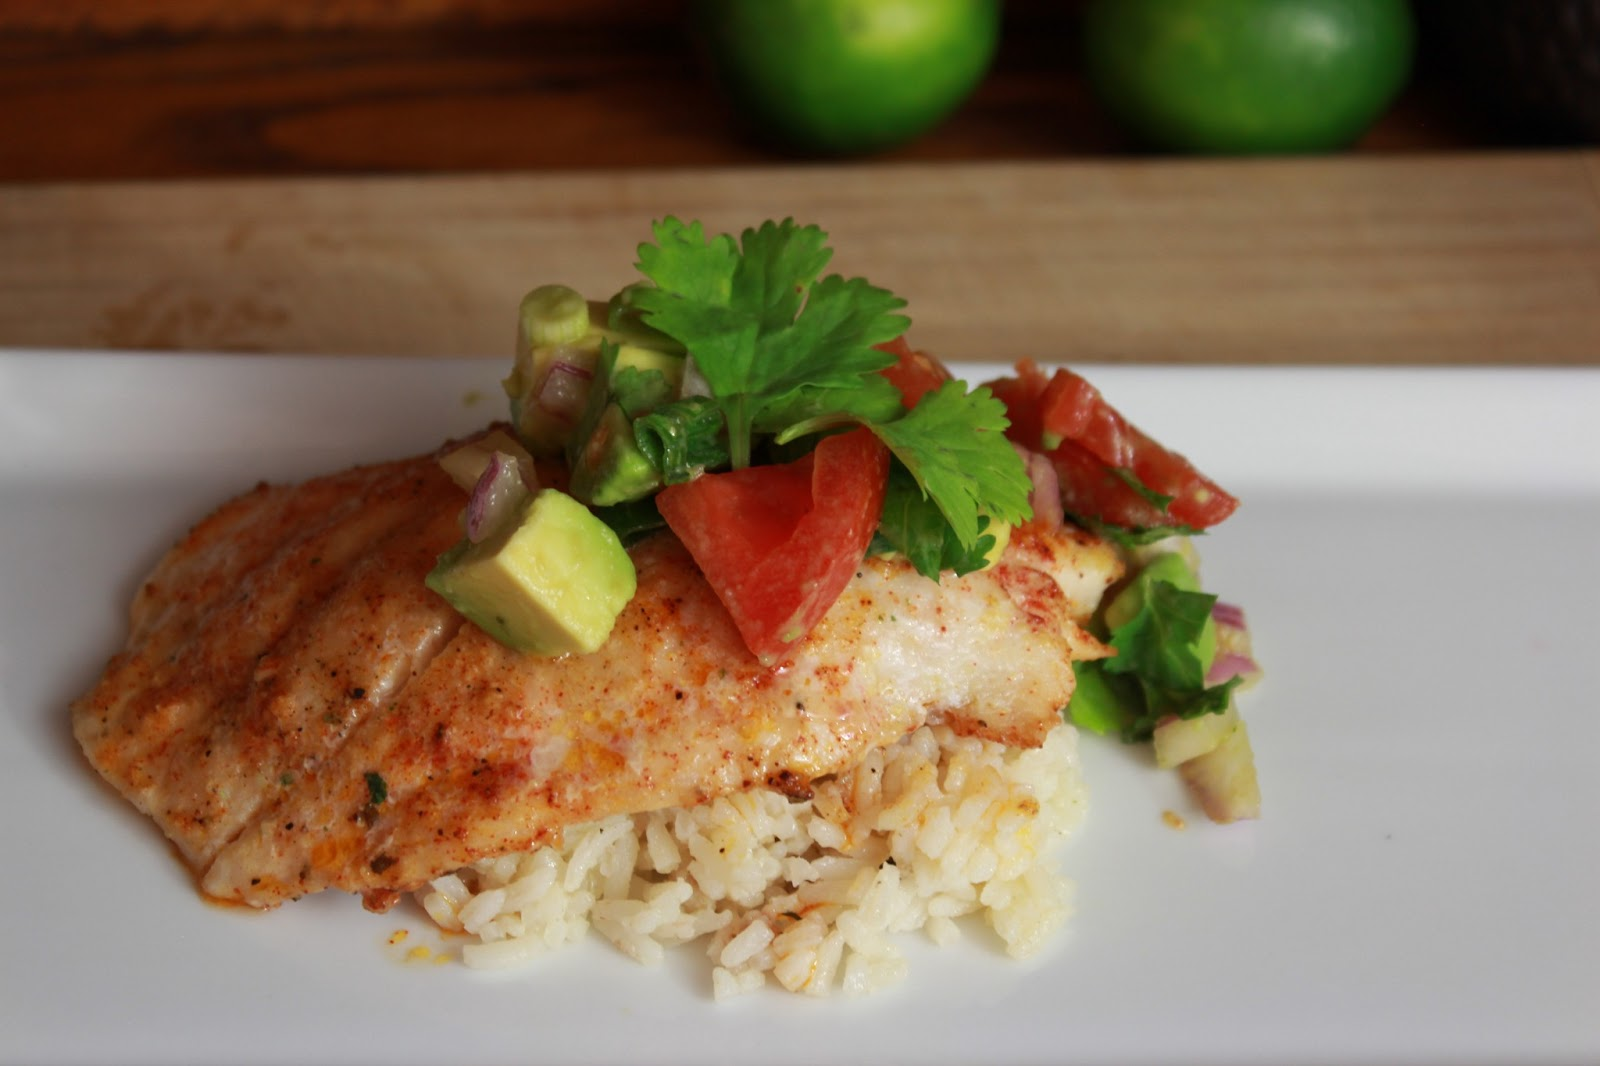 ... red snapper with a red snapper red onion sauteed red snapper with red